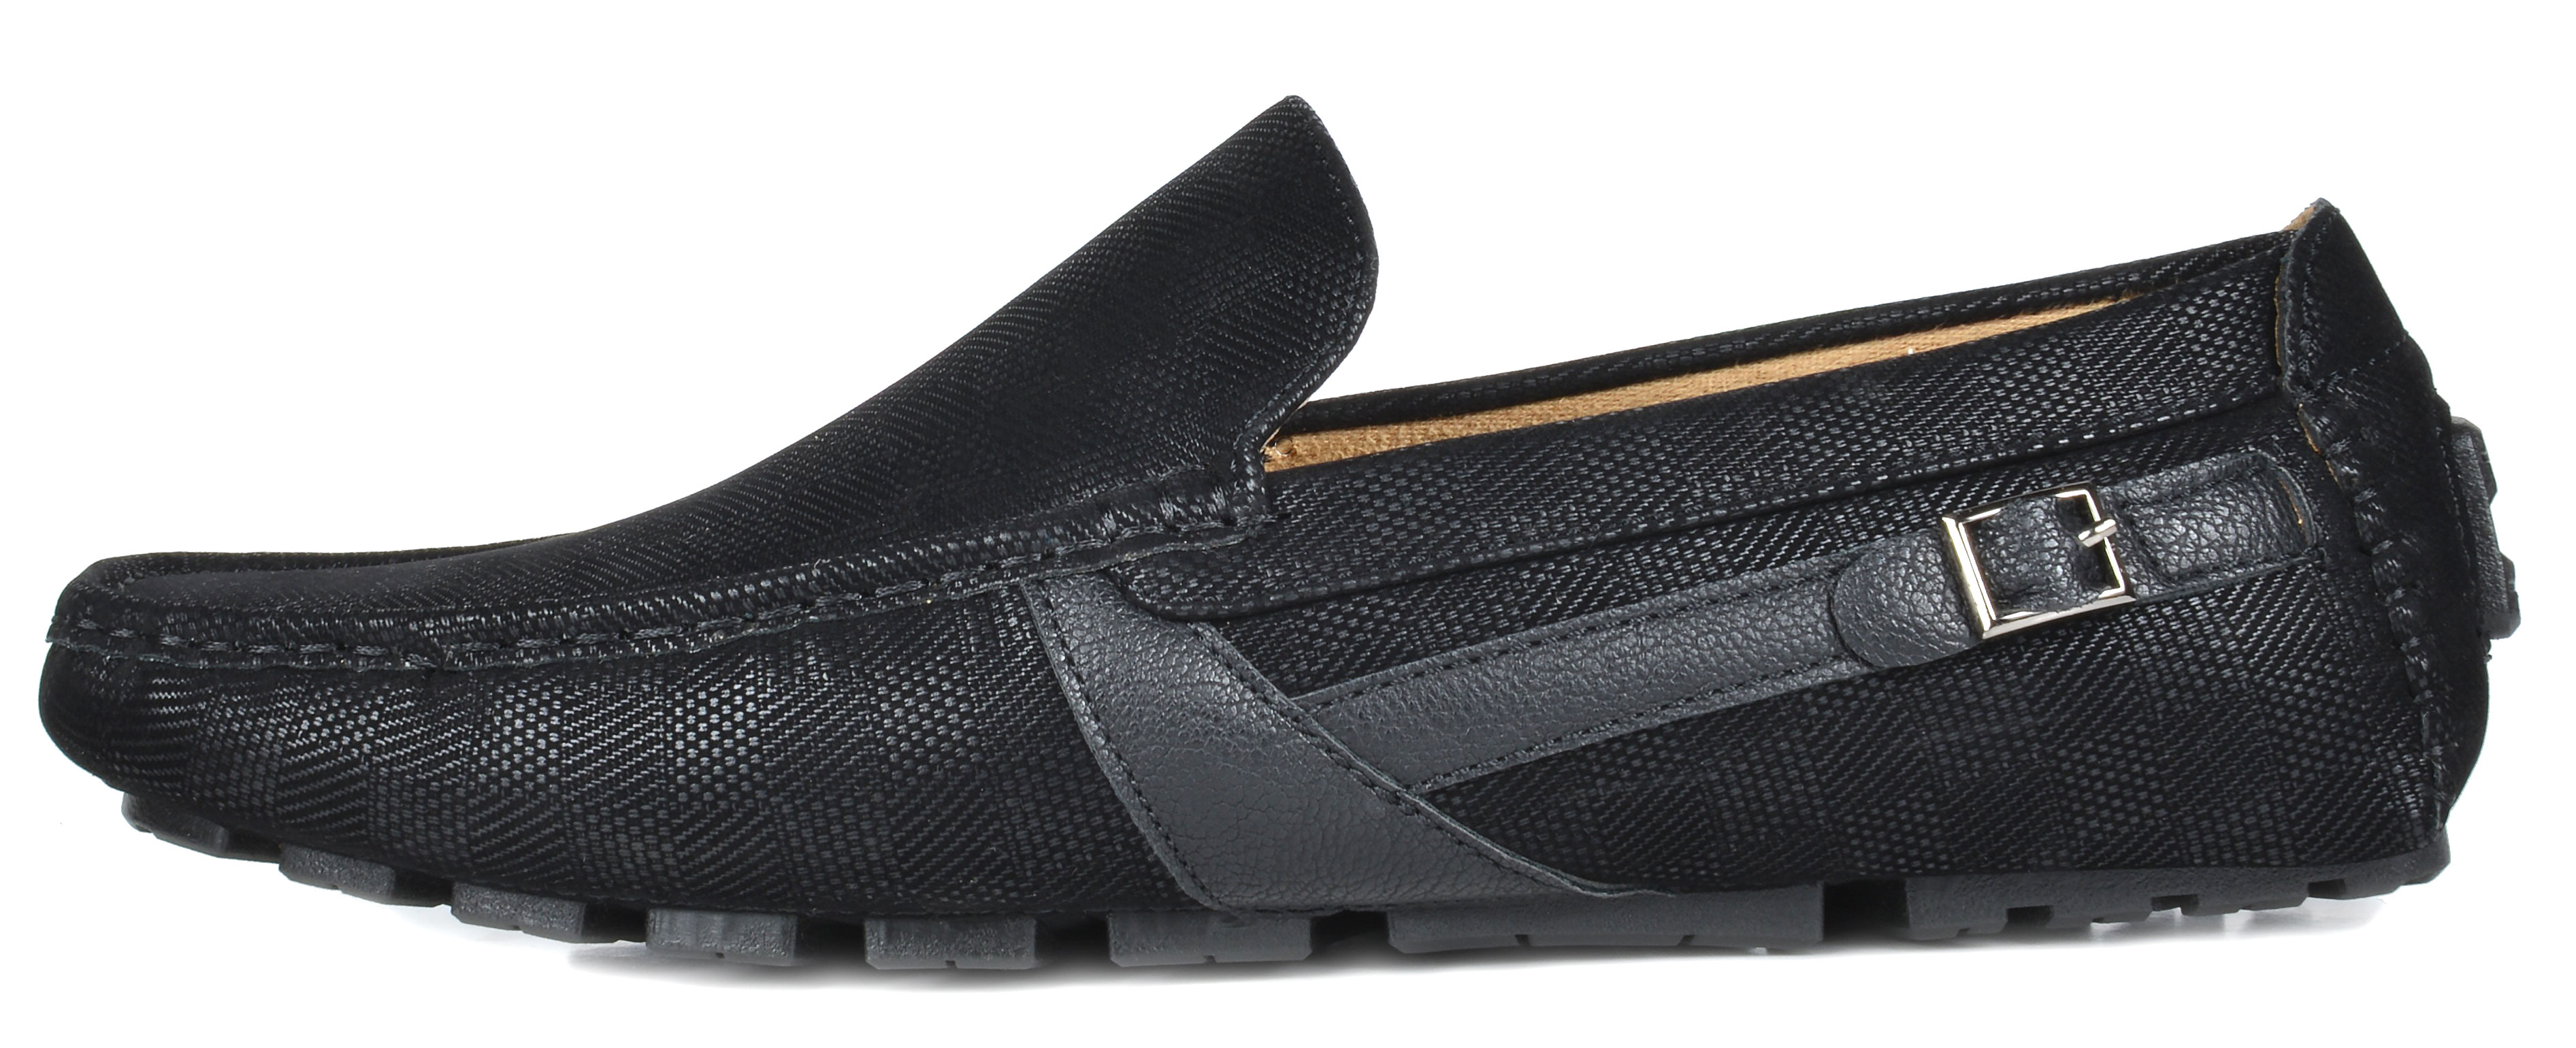 Bruno-Marc-Men-039-s-New-Classic-Fashion-Slip-on-Driving-Casual-Loafers-Boat-Shoes thumbnail 109